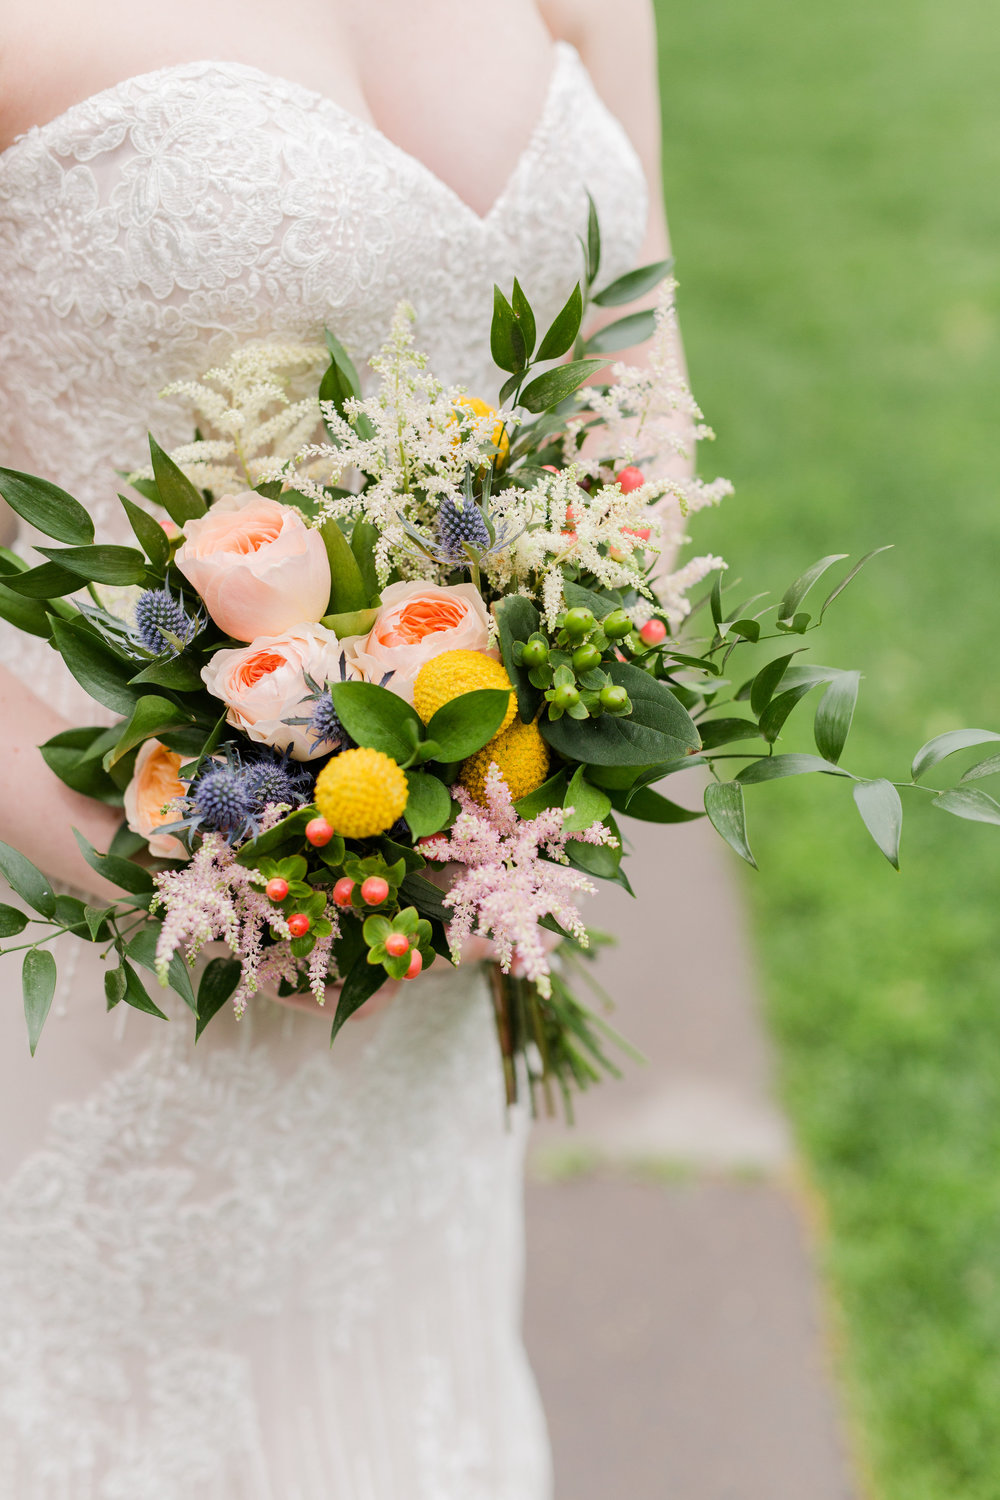 Jill + John :: Kristen Dyer :: Sixpence Events, garden rose with hypericum berry, blue thistle, italian ruscus, button mum and astilbe bridal bouquet